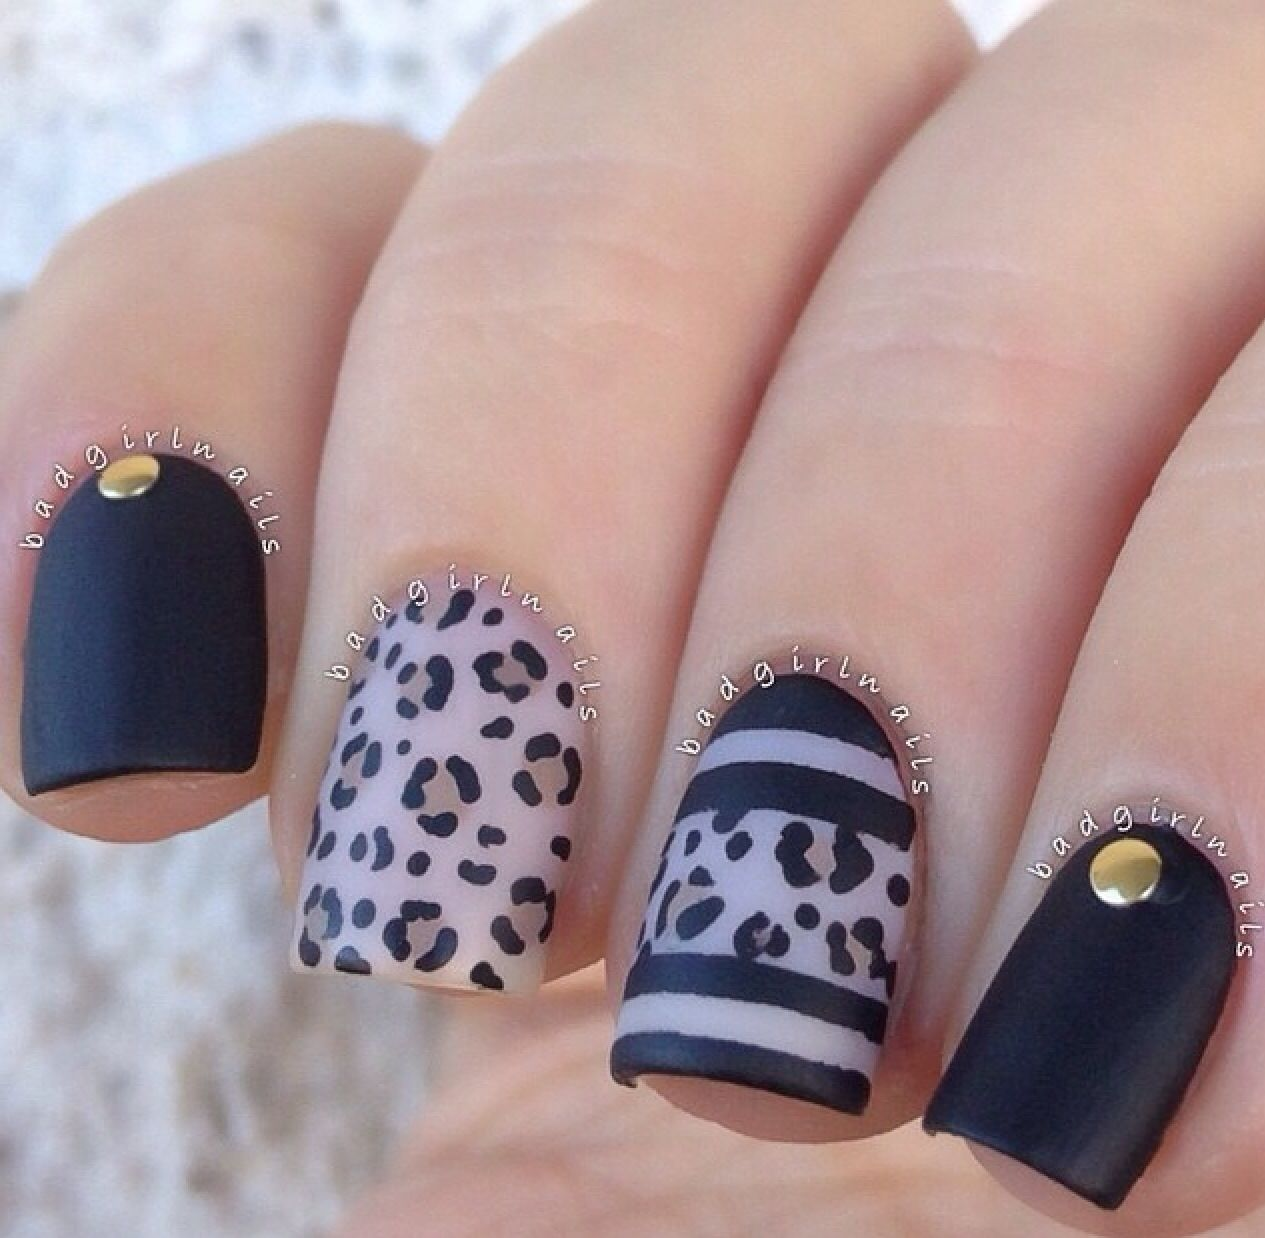 Pin by Alondra Rodriguez on Nails | Pinterest | Leopard print nails ...